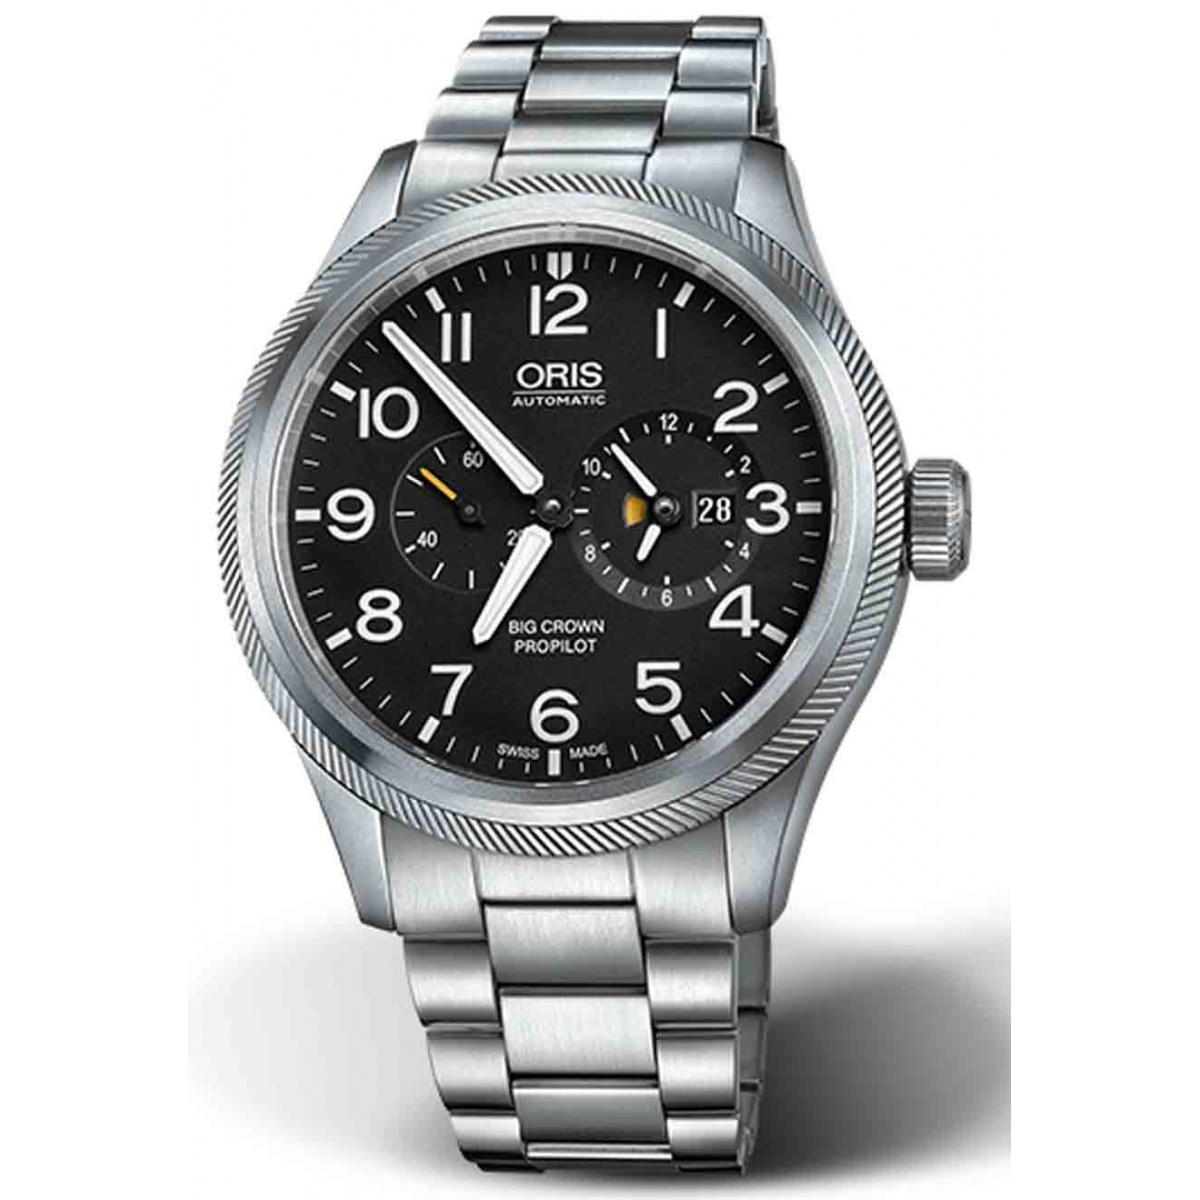 ORIS BIG CROWN PROPILOT WORLDTIMER 100 M ∅44 mm, Esfera negra, acero